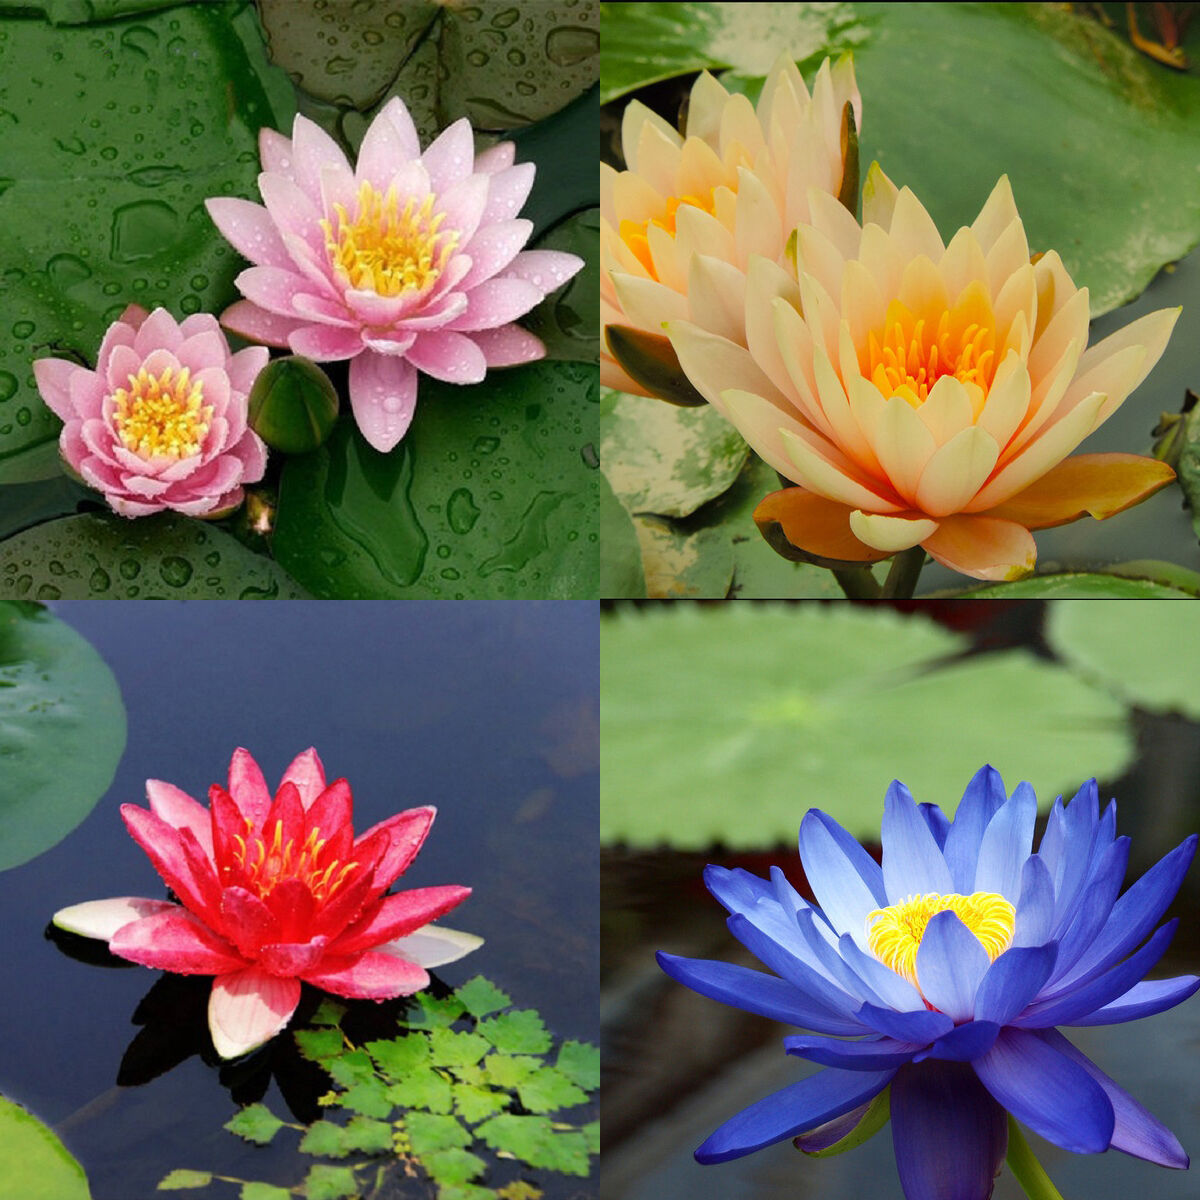 10 seeds 4 color mix bowl lotus flower seed water aquatic plants 10 seeds 4 color mix bowl lotus flower seed water aquatic plants nelumbo 1 of 6free shipping 10 seeds 4 color mix bowl lotus flower mightylinksfo